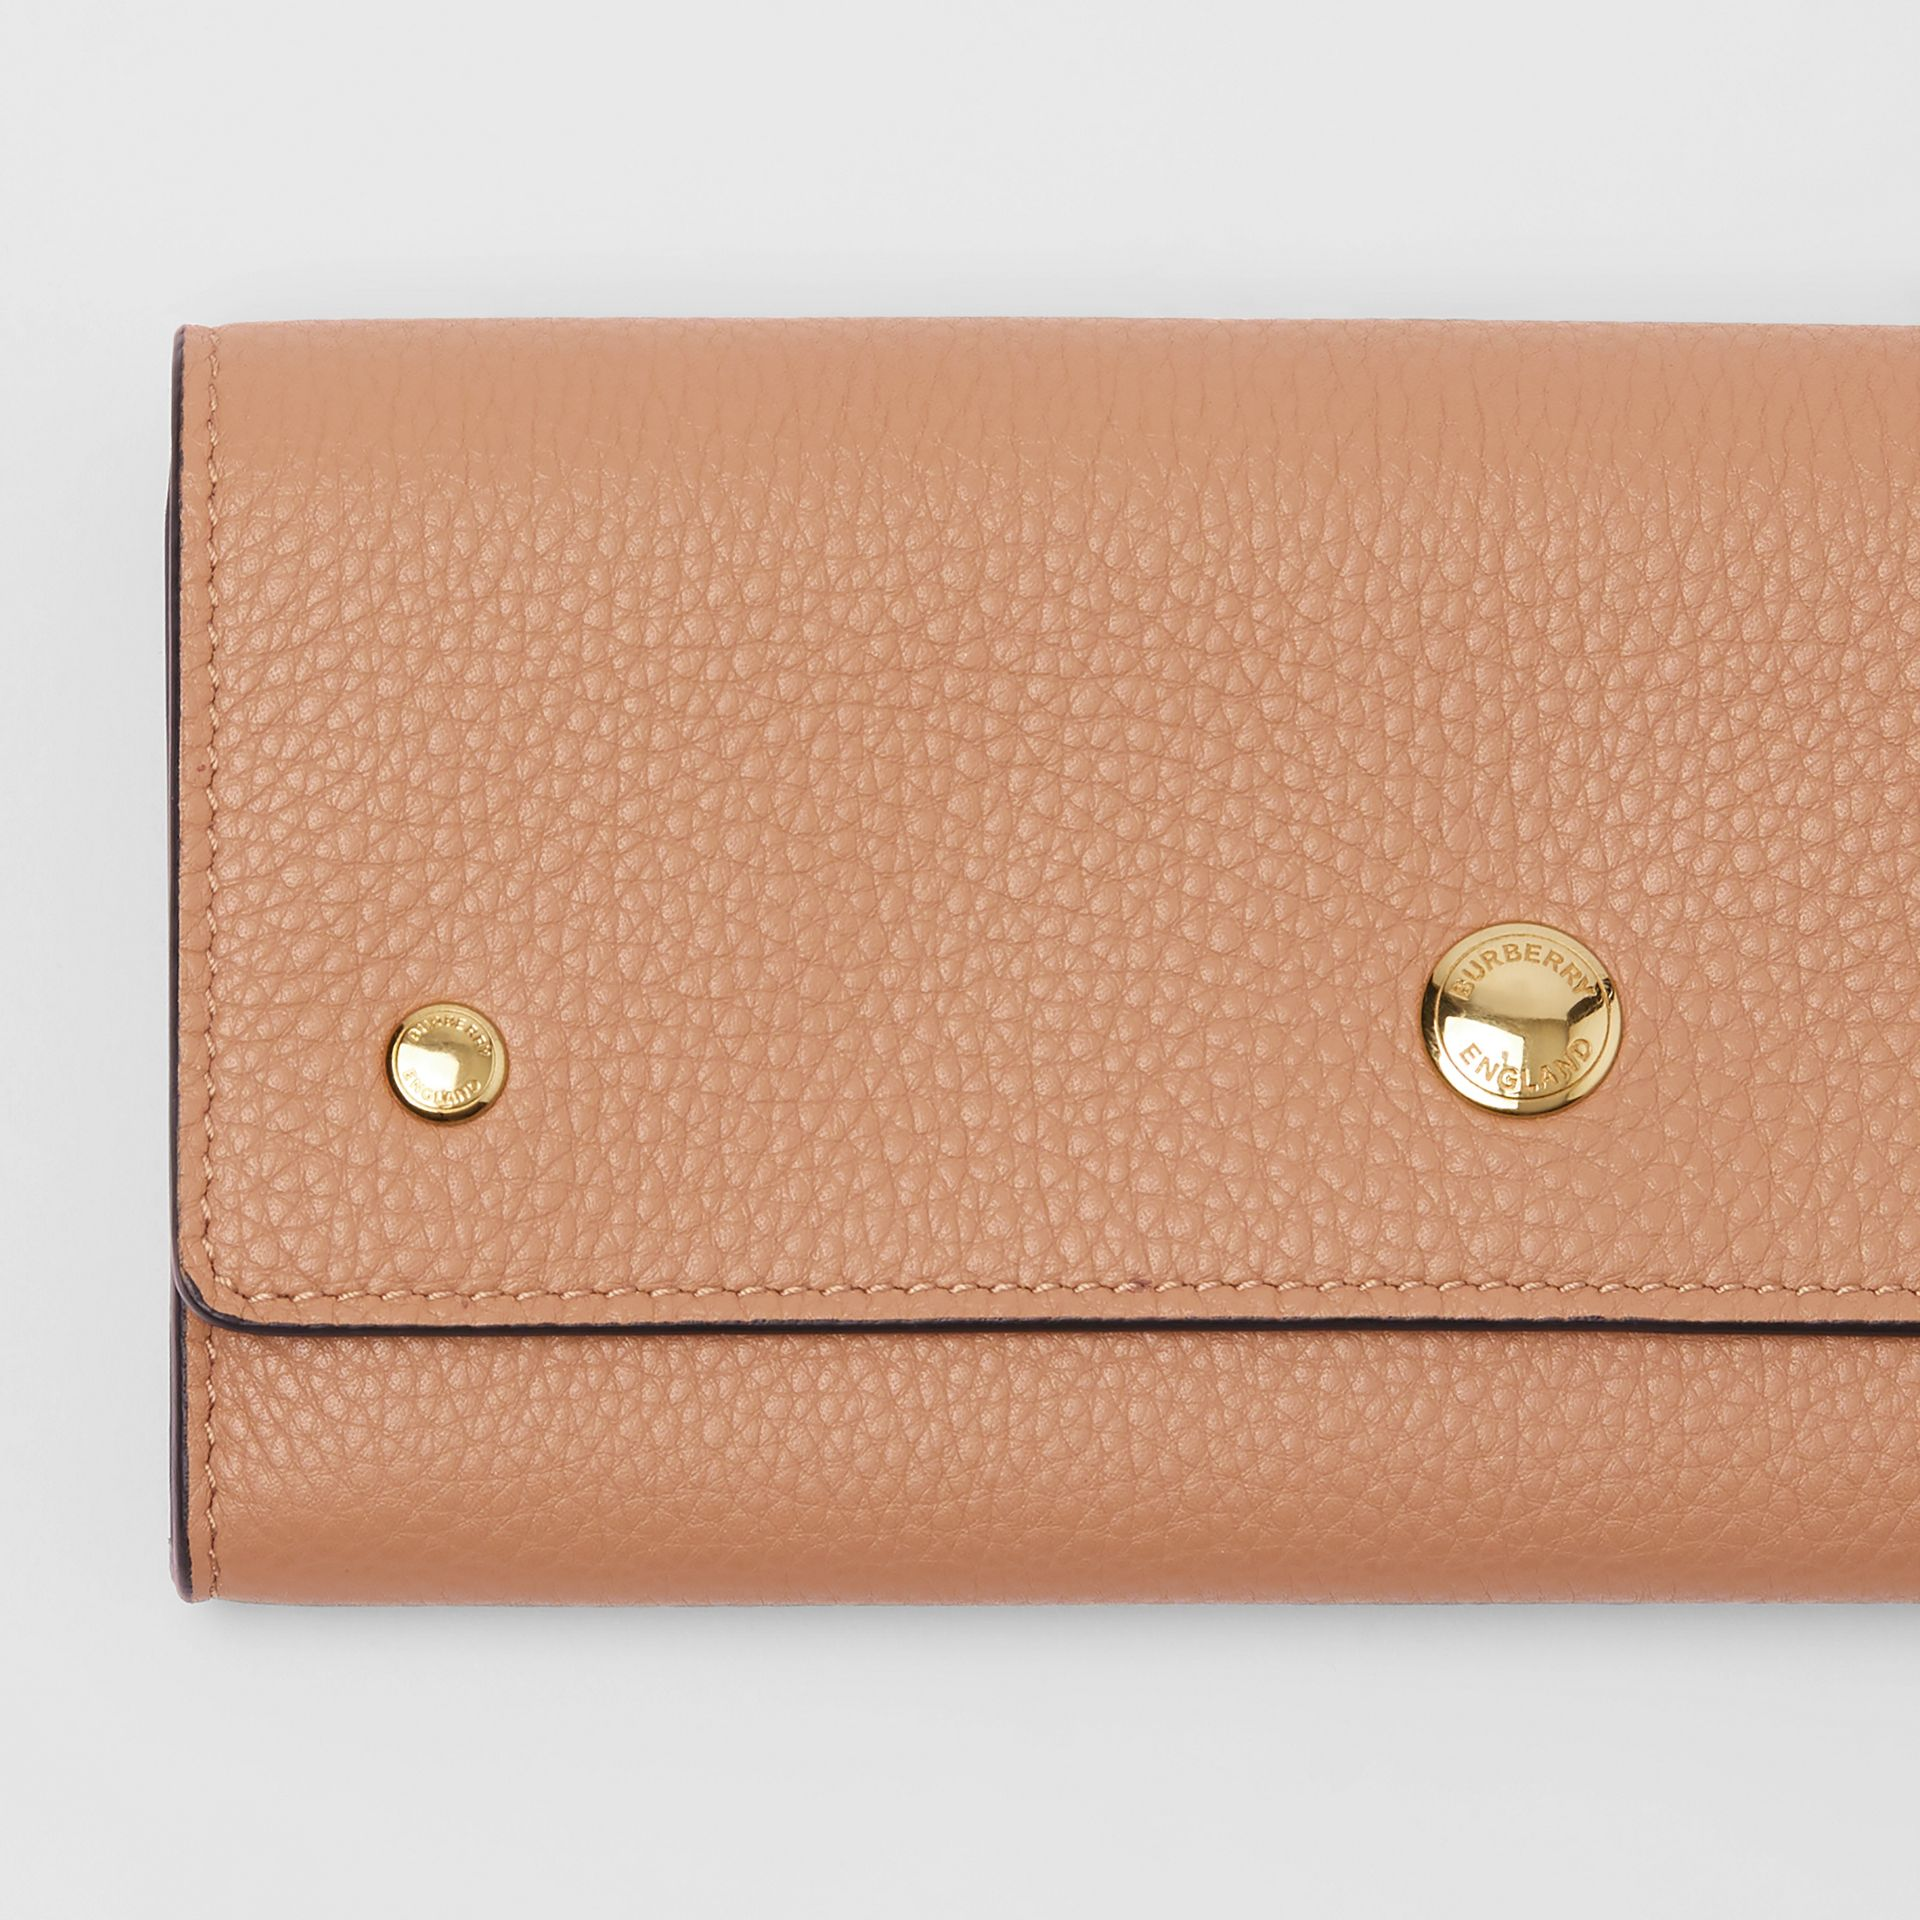 Grainy Leather Continental Wallet in Light Camel - Women | Burberry - gallery image 1